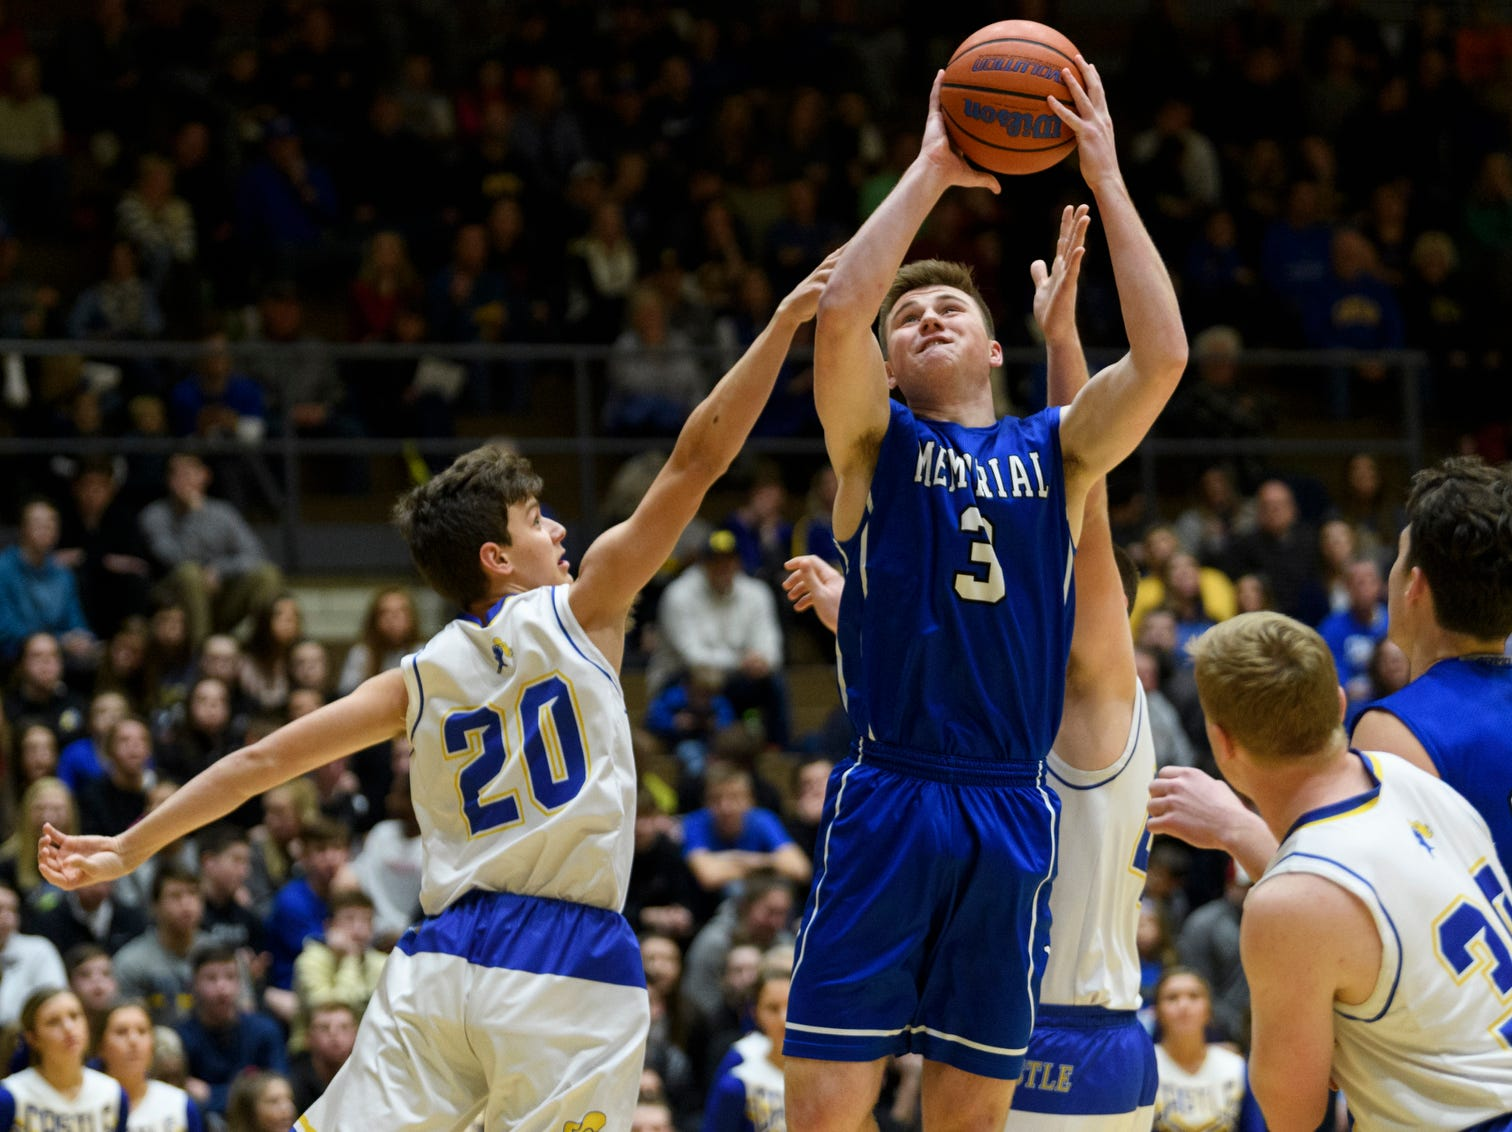 Memorial's Branson Combs (3) makes the first points of the game in first quarter before Castle's Bob Nunge (20) and Castle's Brodey Heaton (44) could stop him at Castle High School in Newburgh, Ind., Friday, Jan. 4, 2019.